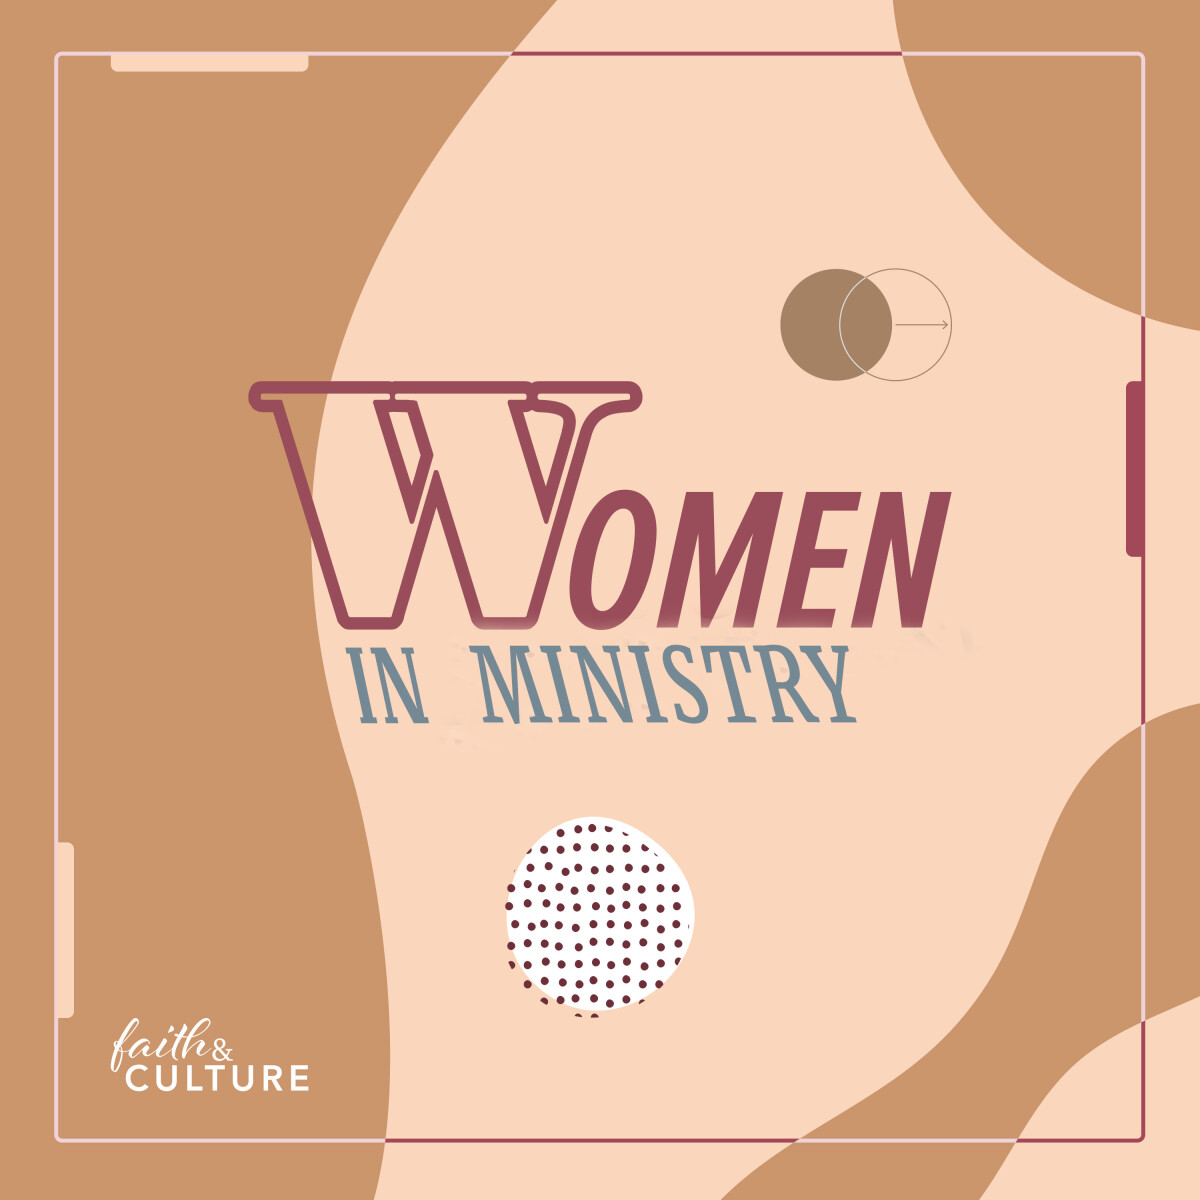 Women in Ministry- Faith & Culture